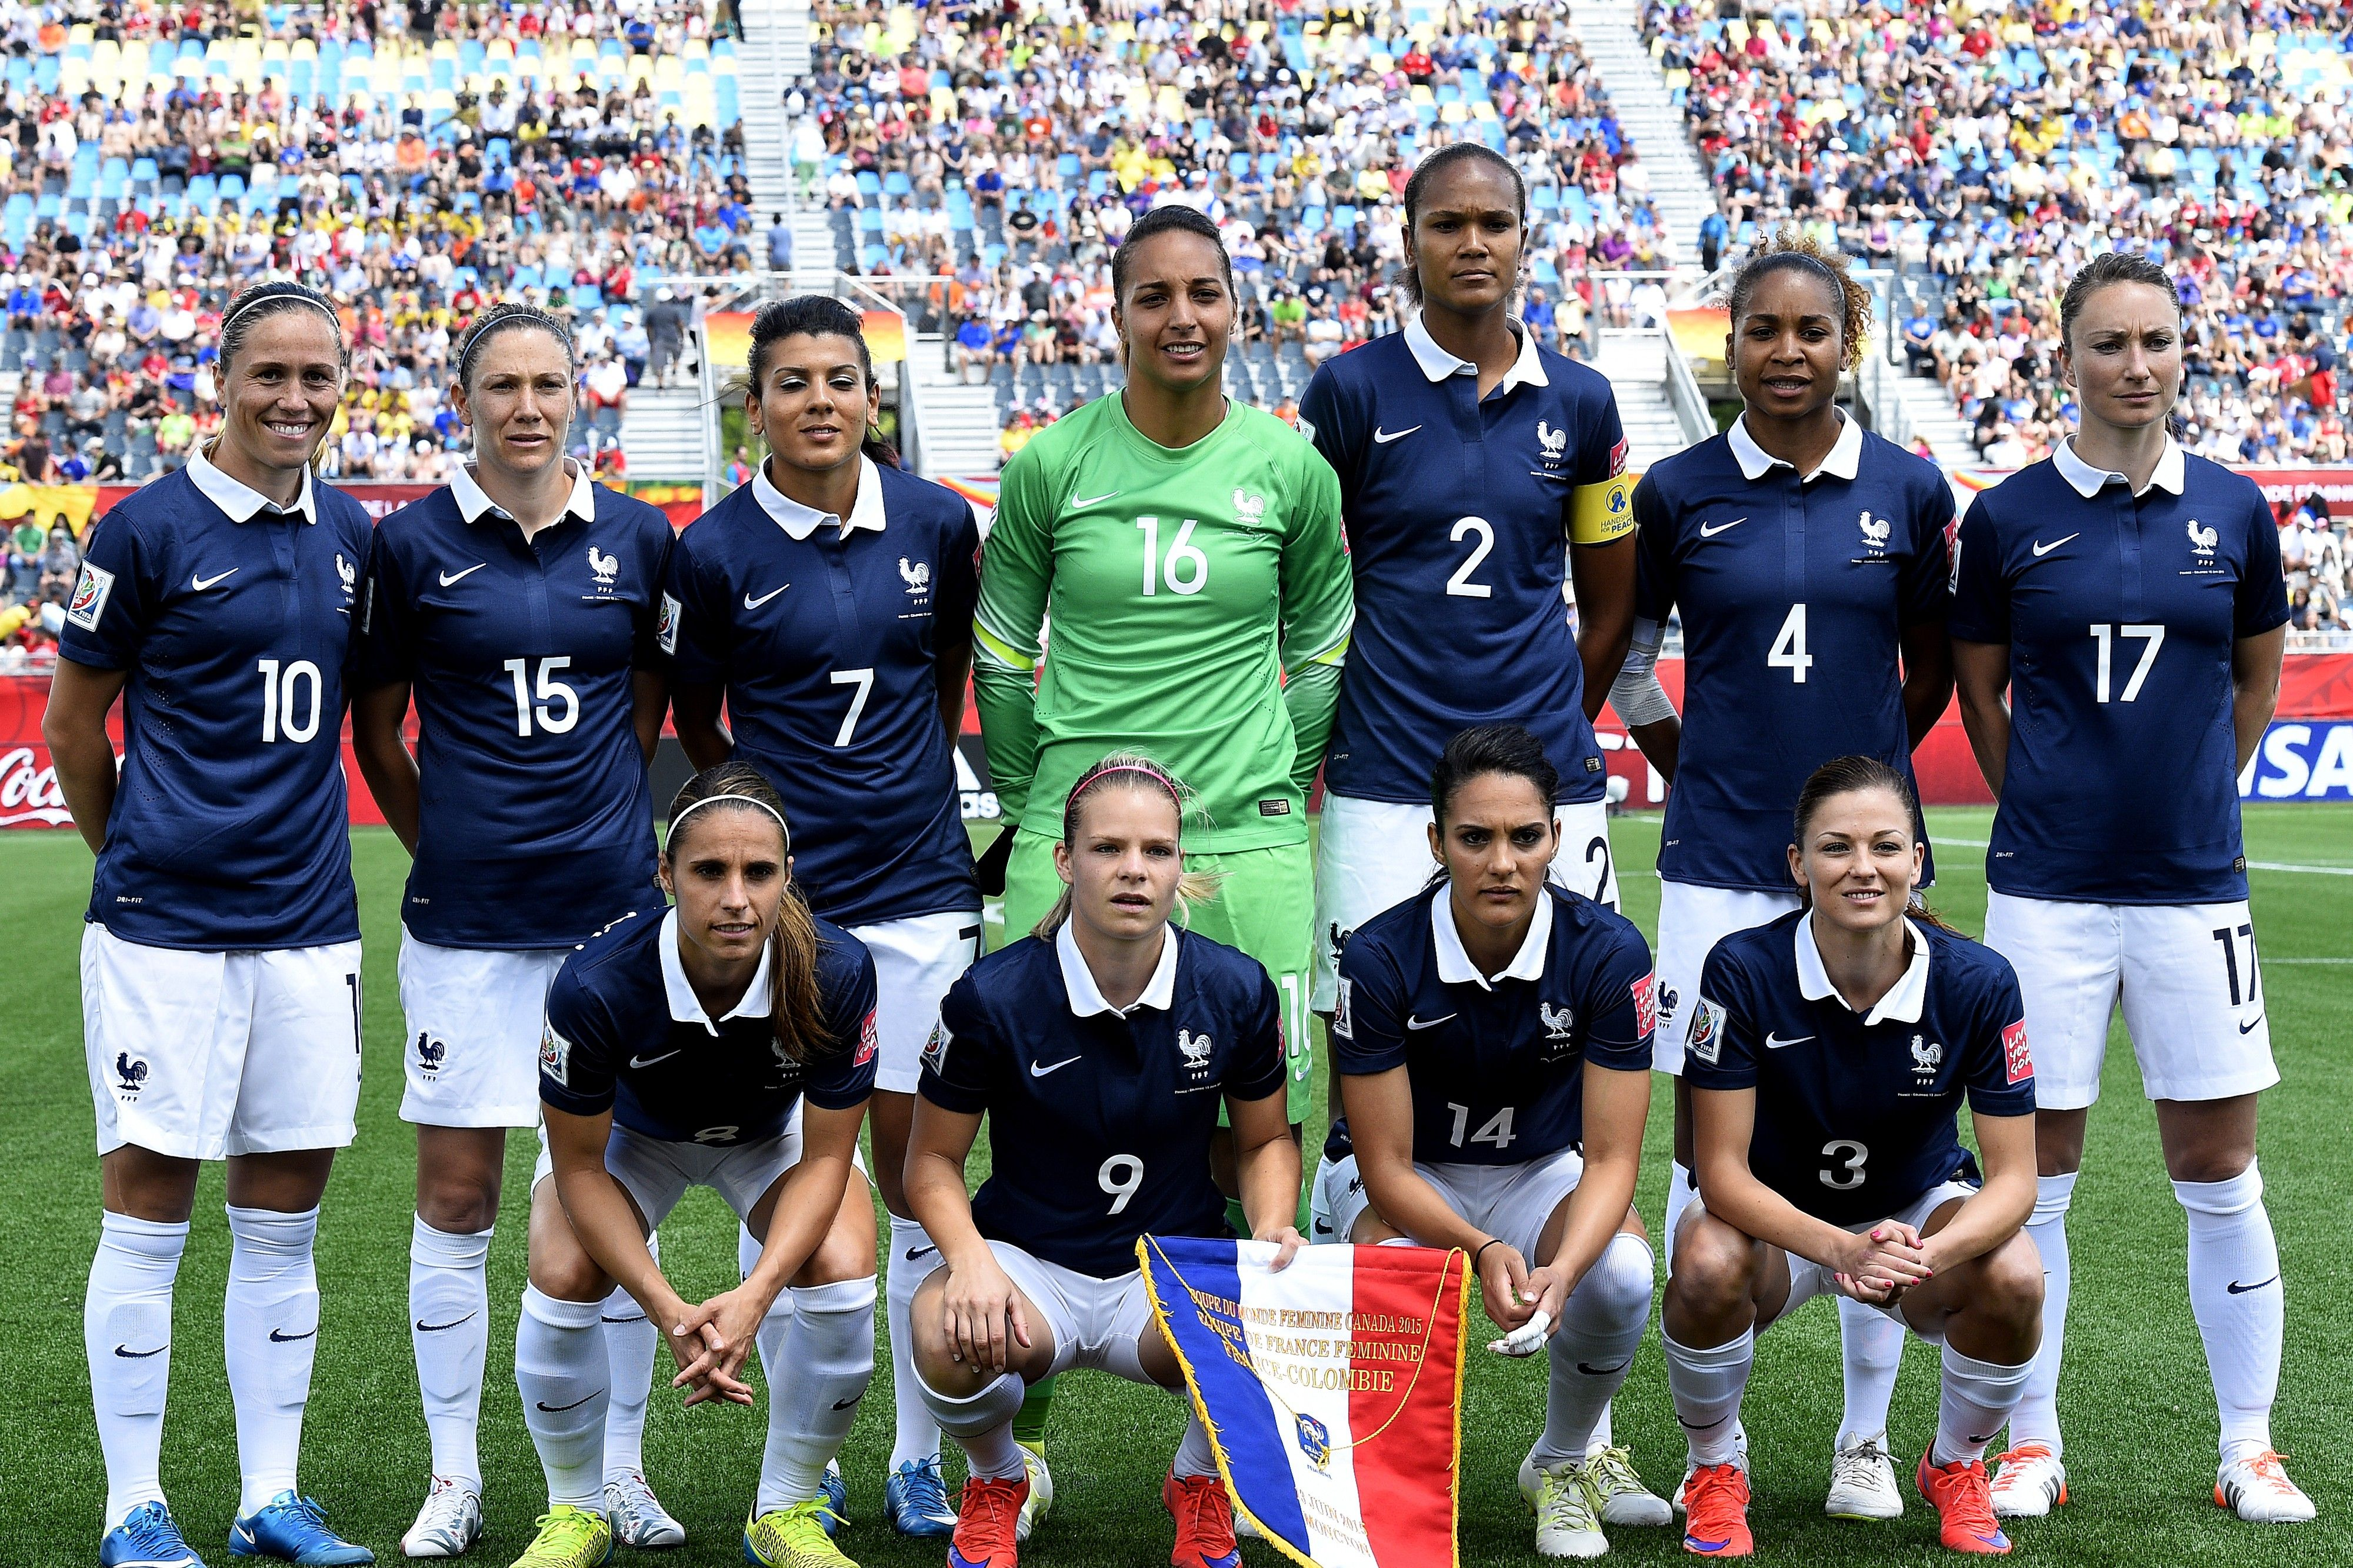 Equipe De France Feminine Football 2015 France Women